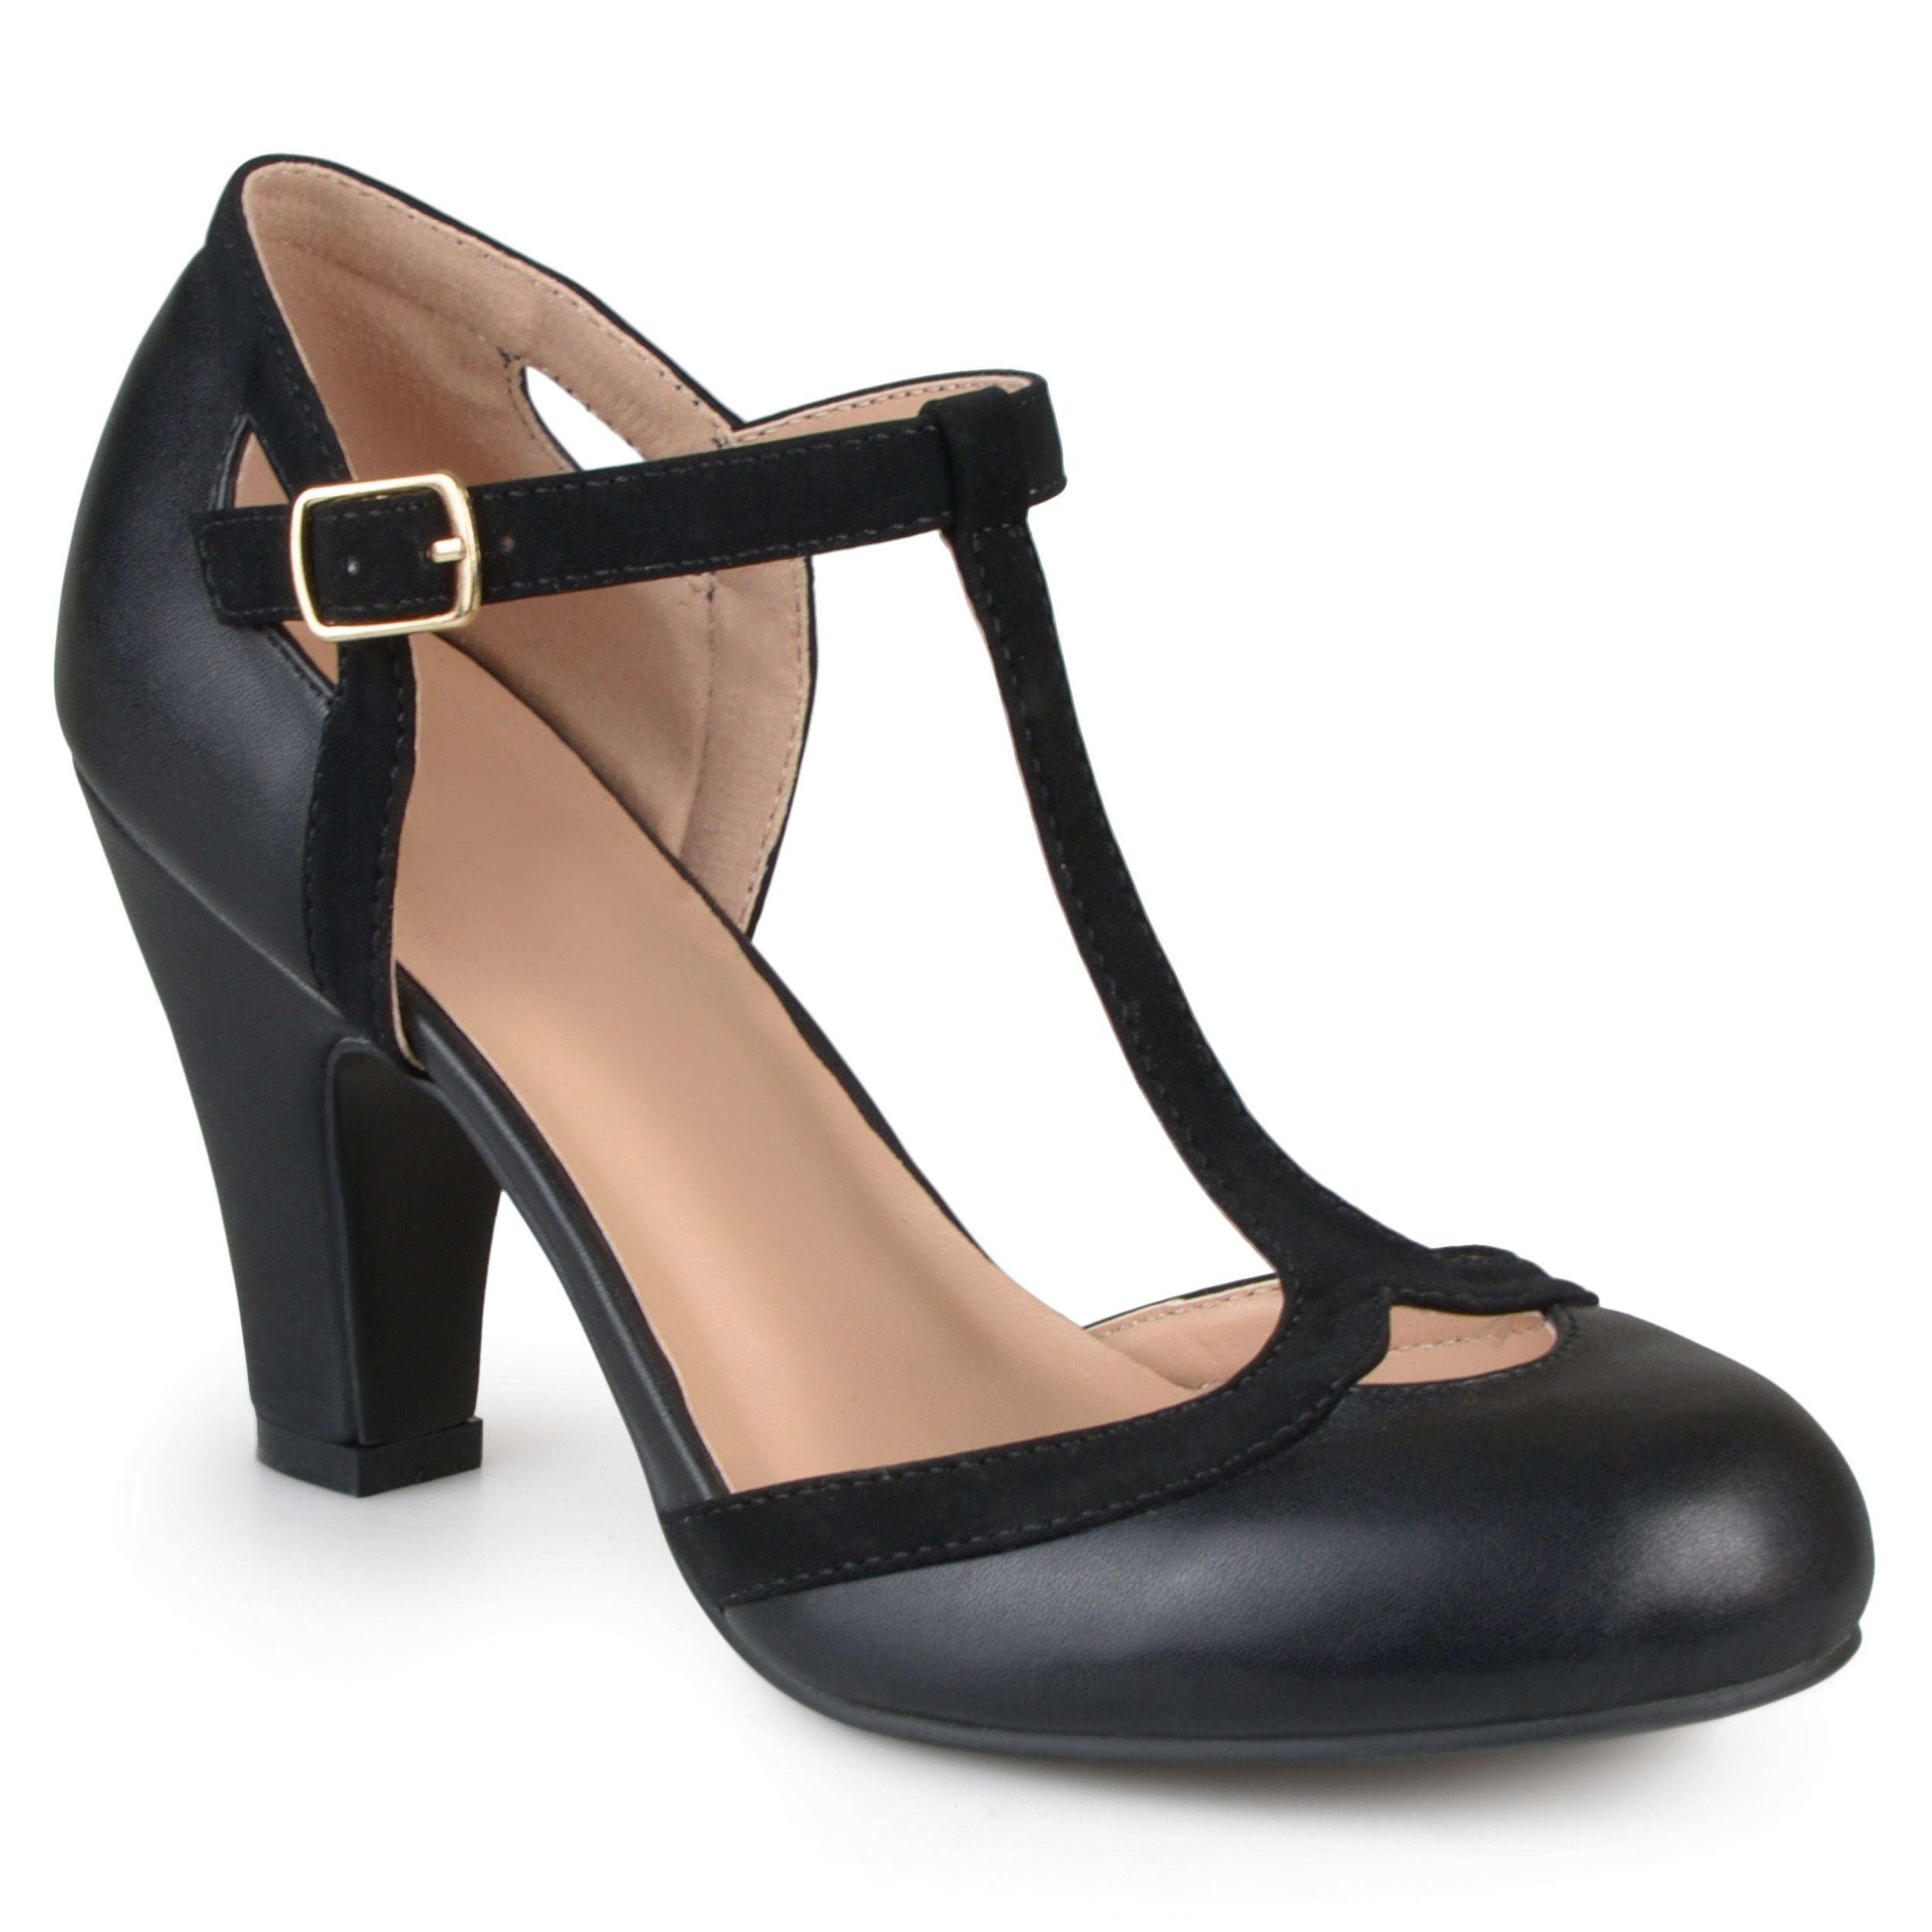 d84b2dd86fd7 Journee Collection Women s  Olina  T-strap Round Toe Mary Jane Pumps  (Black- 8)